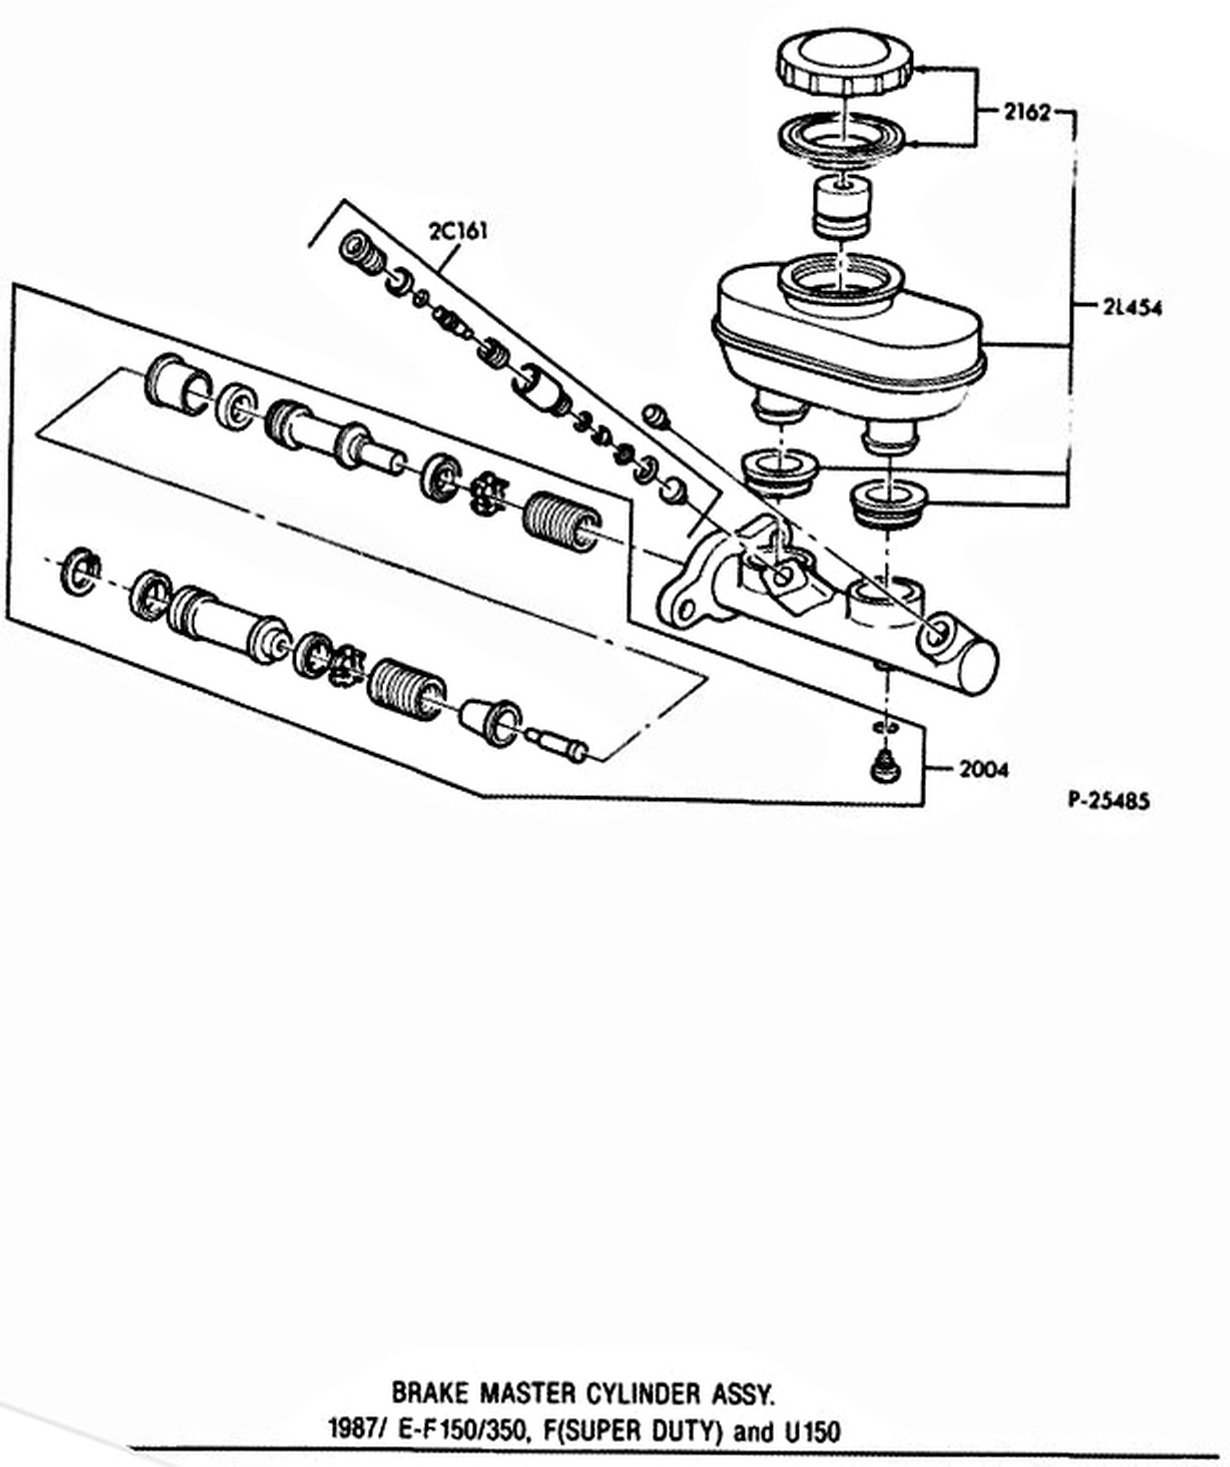 medium resolution of the push rod has an adjustment screw to maintain the correct relationship between the booster control valve plunger and the master cylinder piston